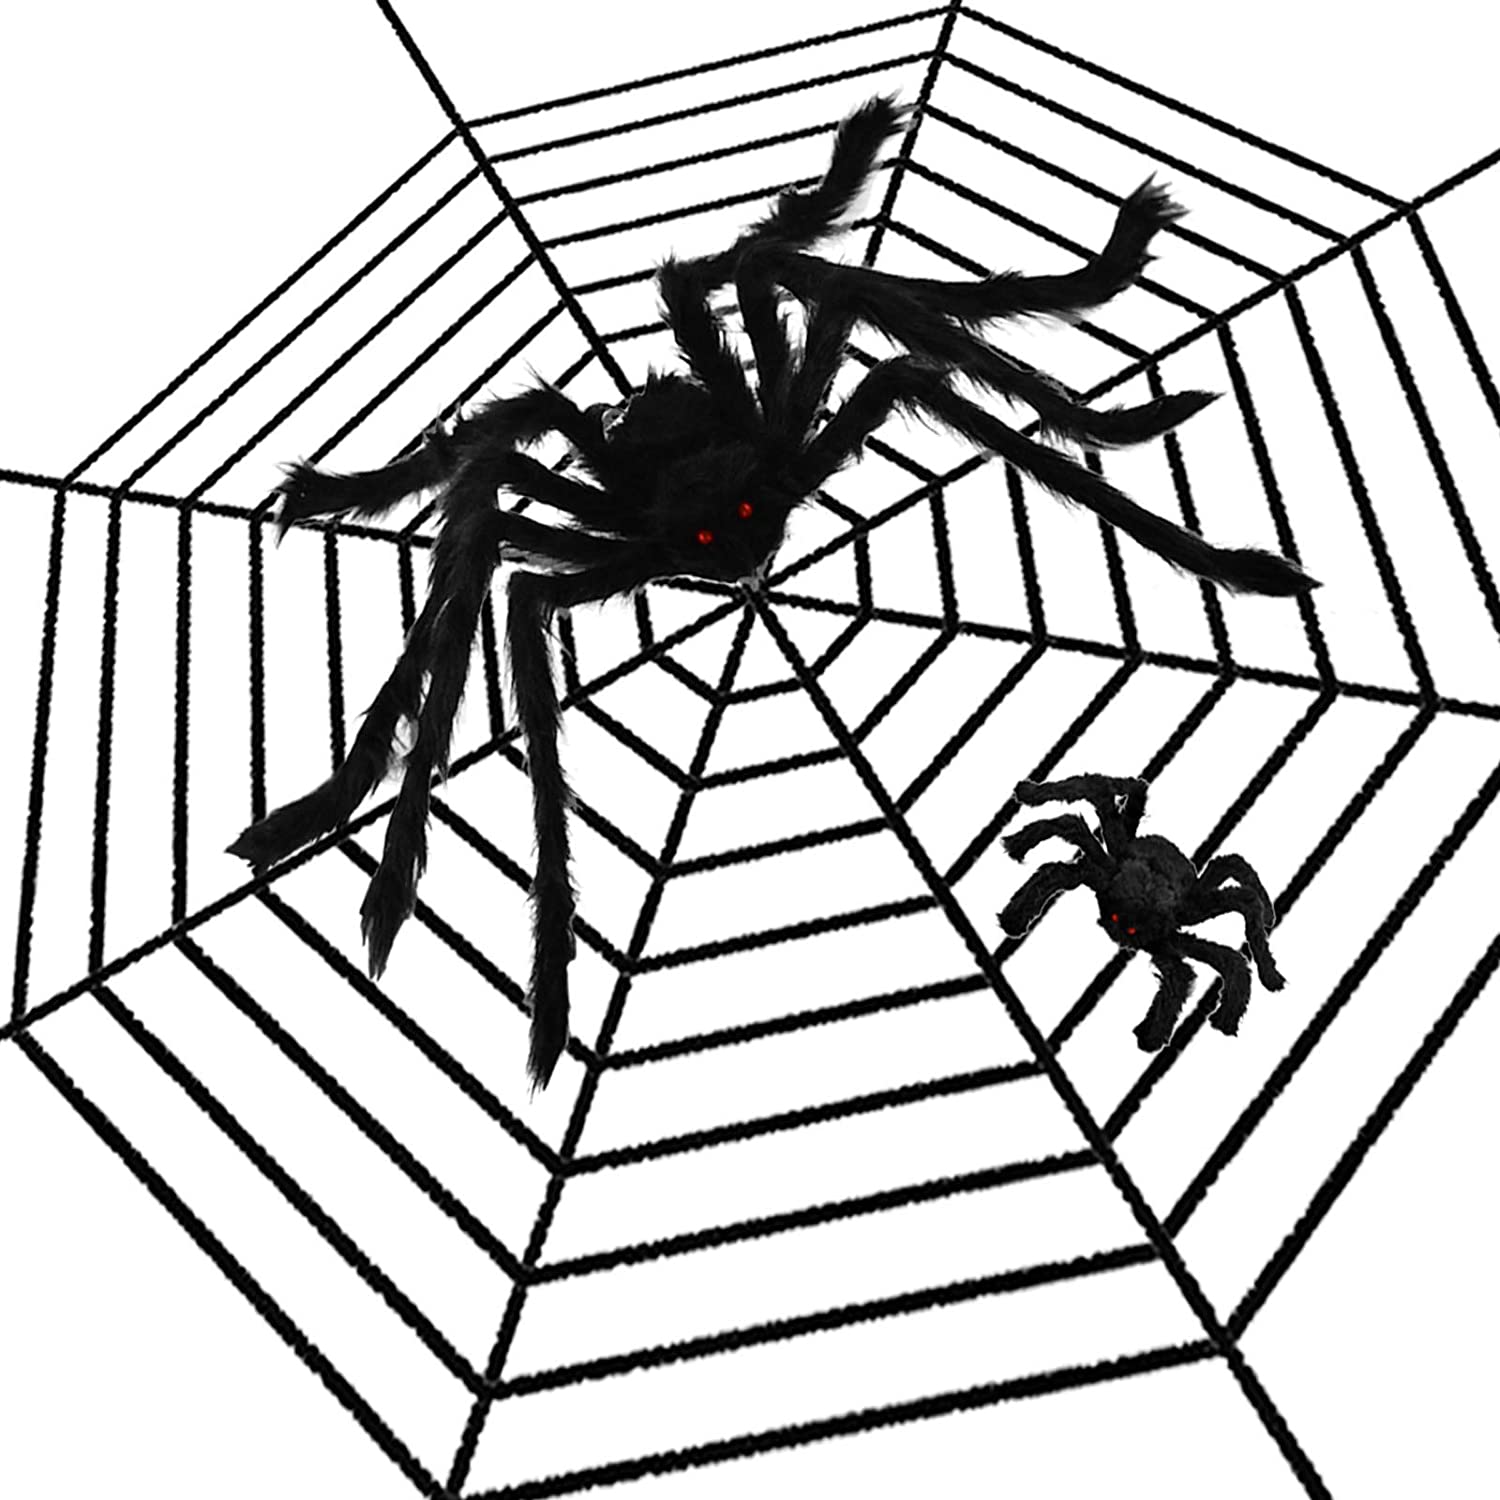 KATUMO Halloween Spider Web Decor 12Ft Giant Cobweb 2.6Ft Huge Fake Spider and 0.8Ft Mini Spider Value Set for Halloween Decorations Bar Party Decor Outdoor Indoor Yard Scary Haunted House Decors